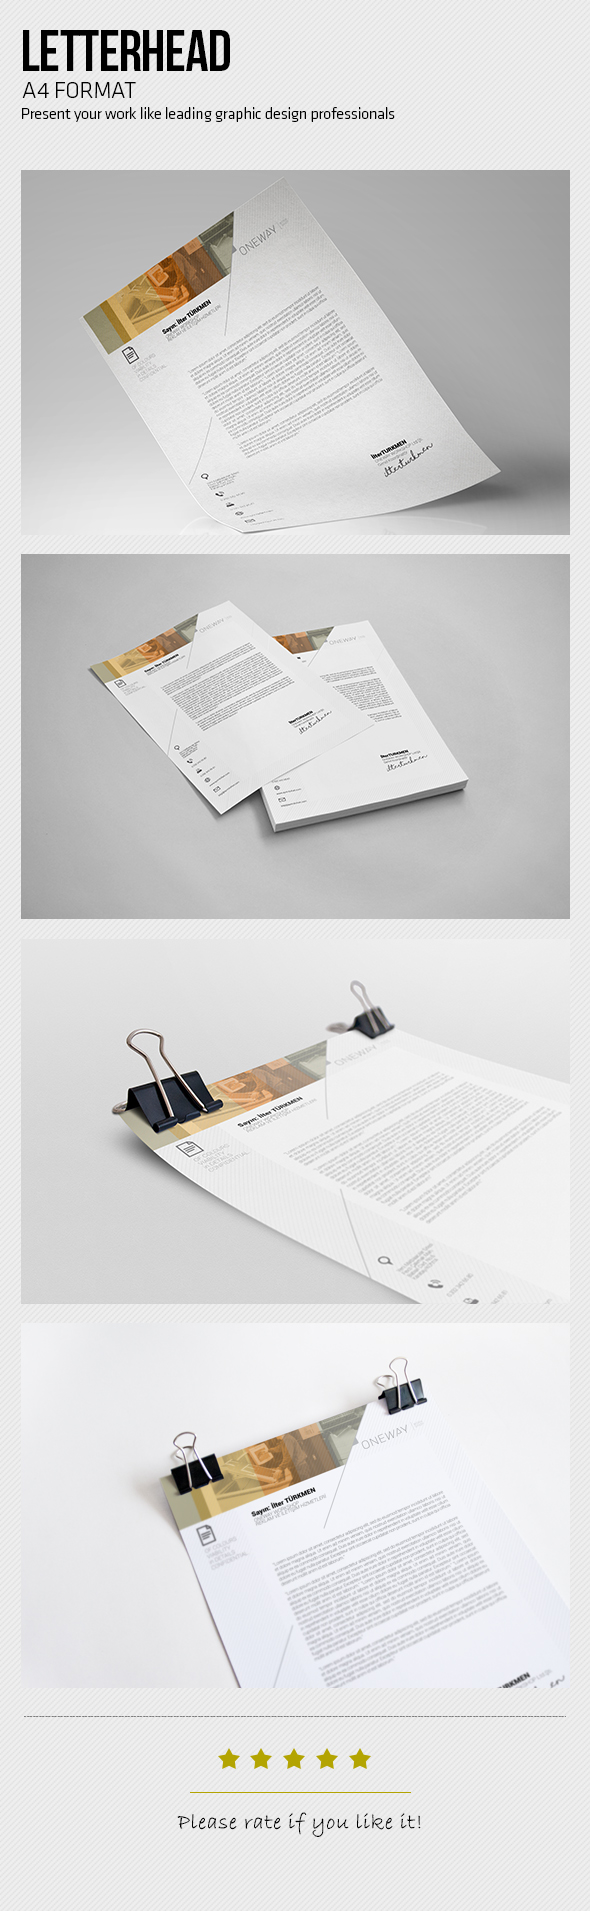 Minimal letterhead buy minimal letterhead by ilterturkmen on graphicriver page size cmyk color 6 pages design in 300 dpi resolution print ready format indesign file spiritdancerdesigns Choice Image